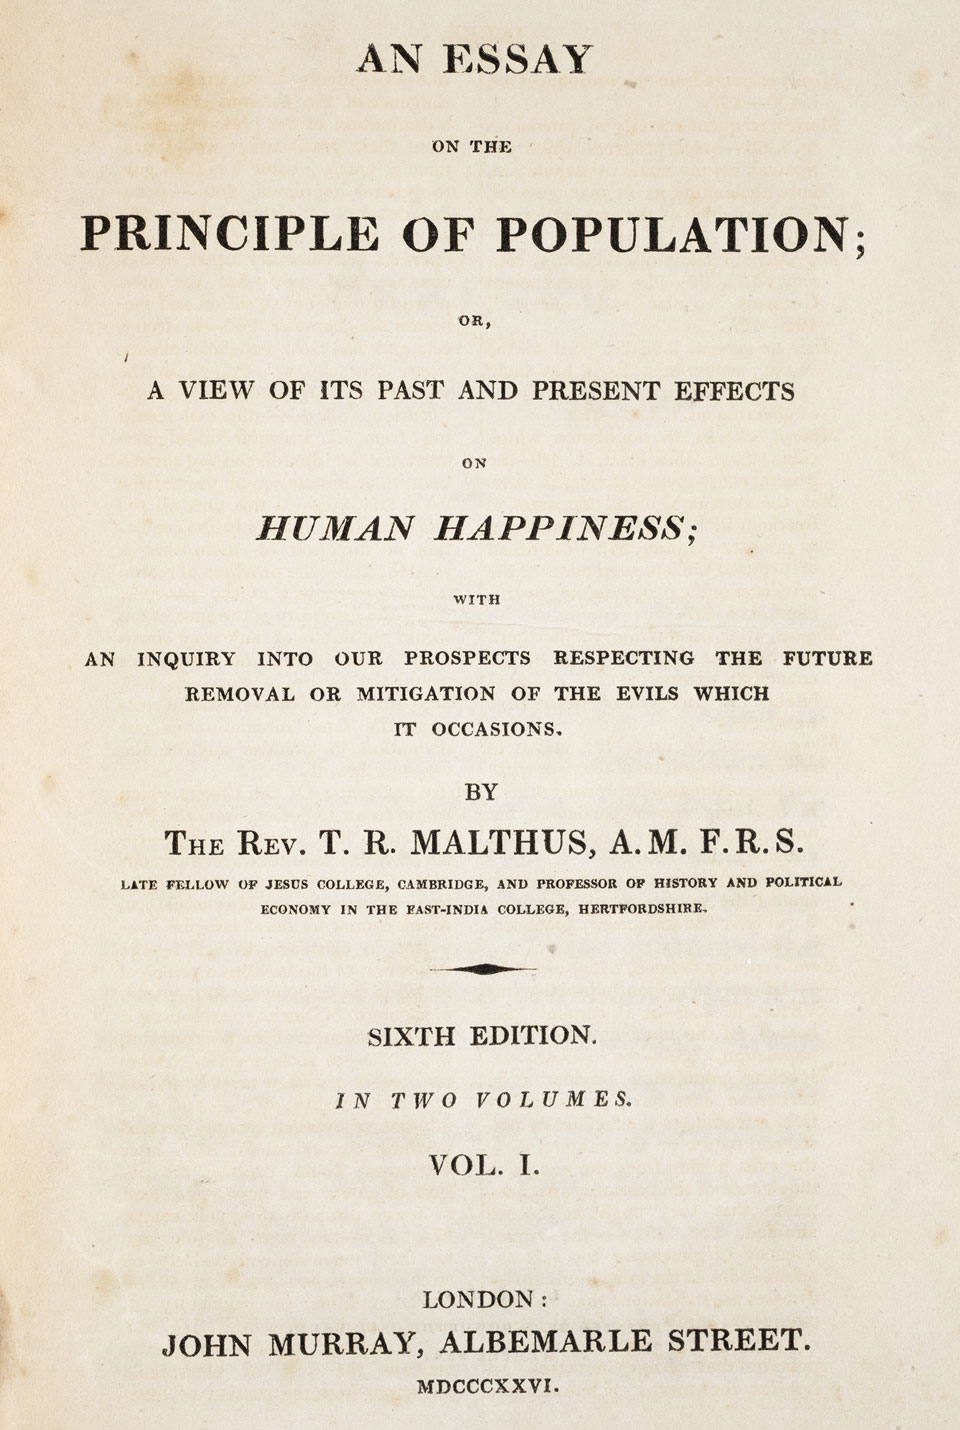 Thomas malthus an essay on the principle of population